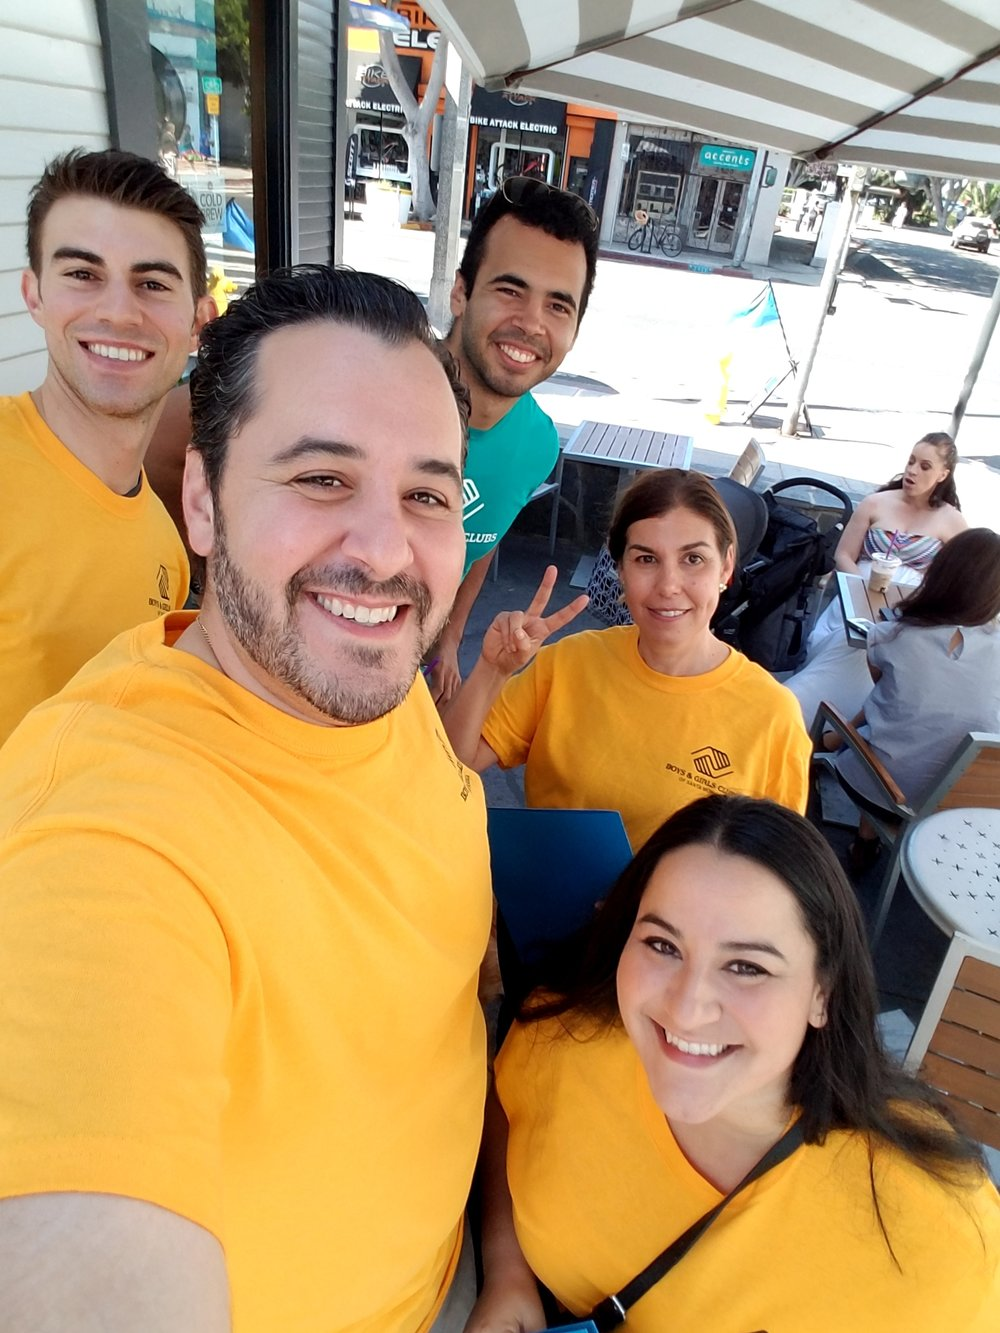 Council members, Ryan, Nicole, Kim and Tino, on our weekend canvass down Main Street. We walked to our local business introducing ourselves and picking up for auction items. Everyone was awesome and very welcoming. Our community is strong in Santa Monica!